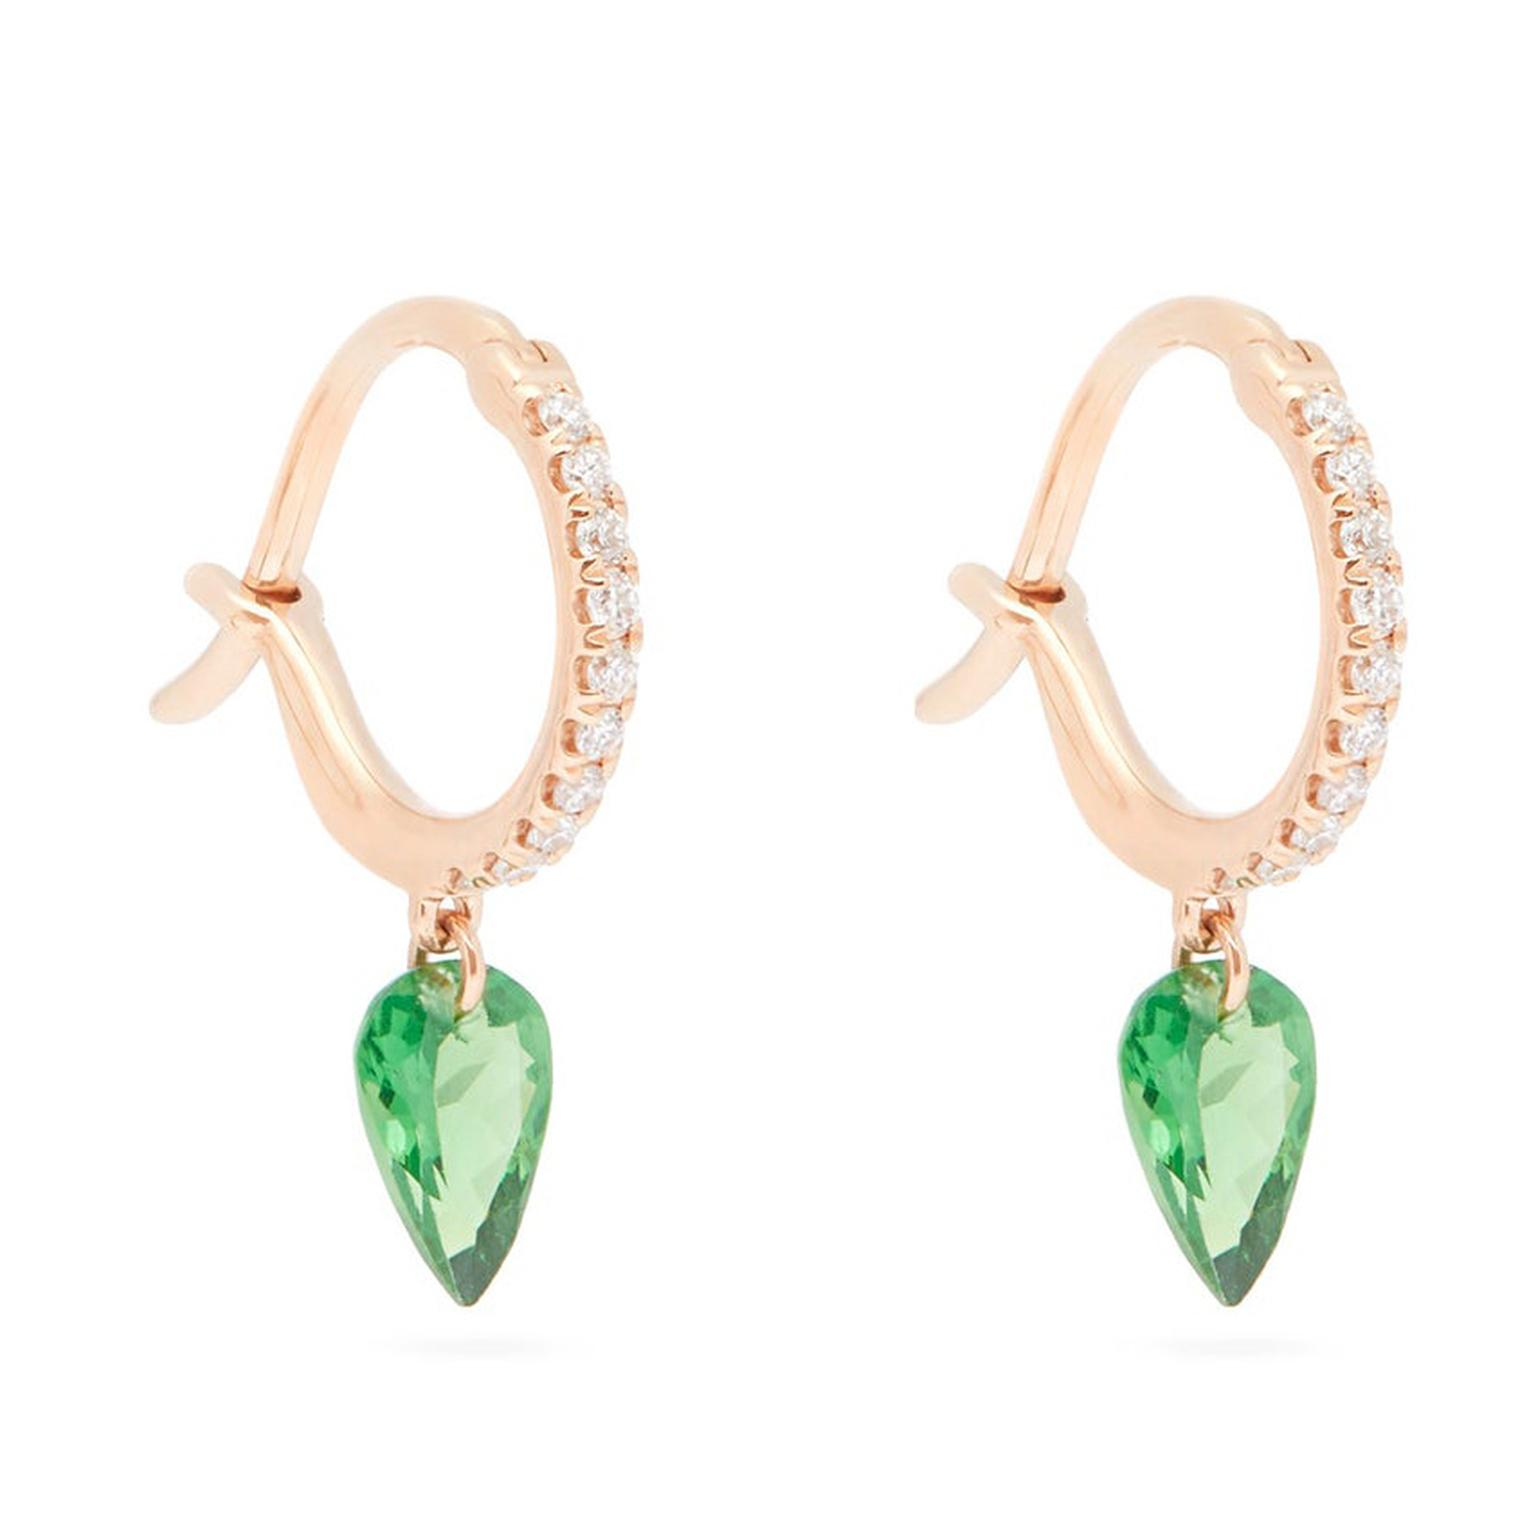 Raphaele Canot tsavorite earrings